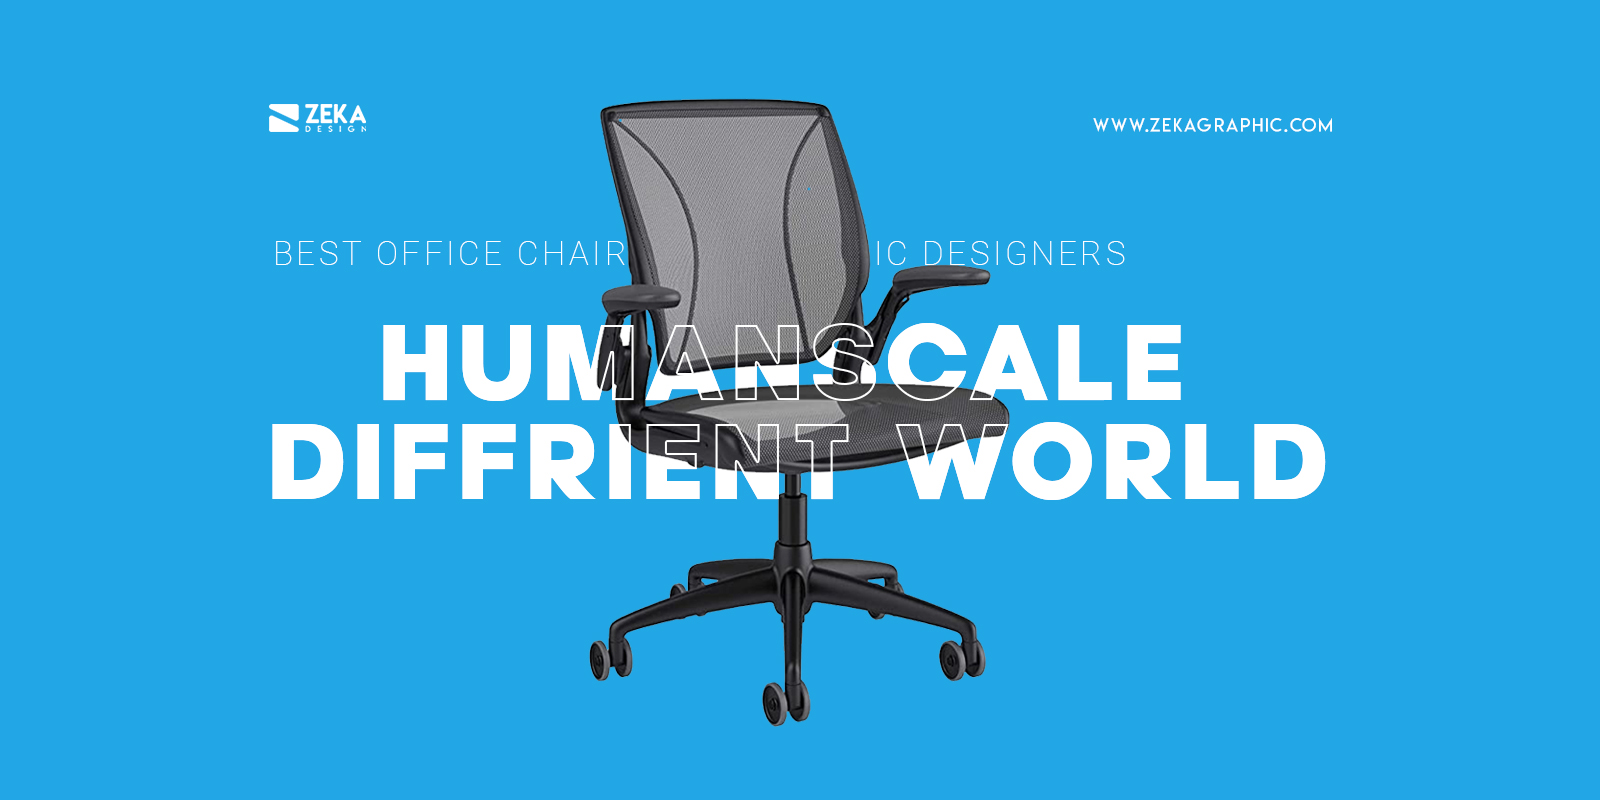 Humanscale Diffrient World Best Office Chair For Small Workspace Graphic Design